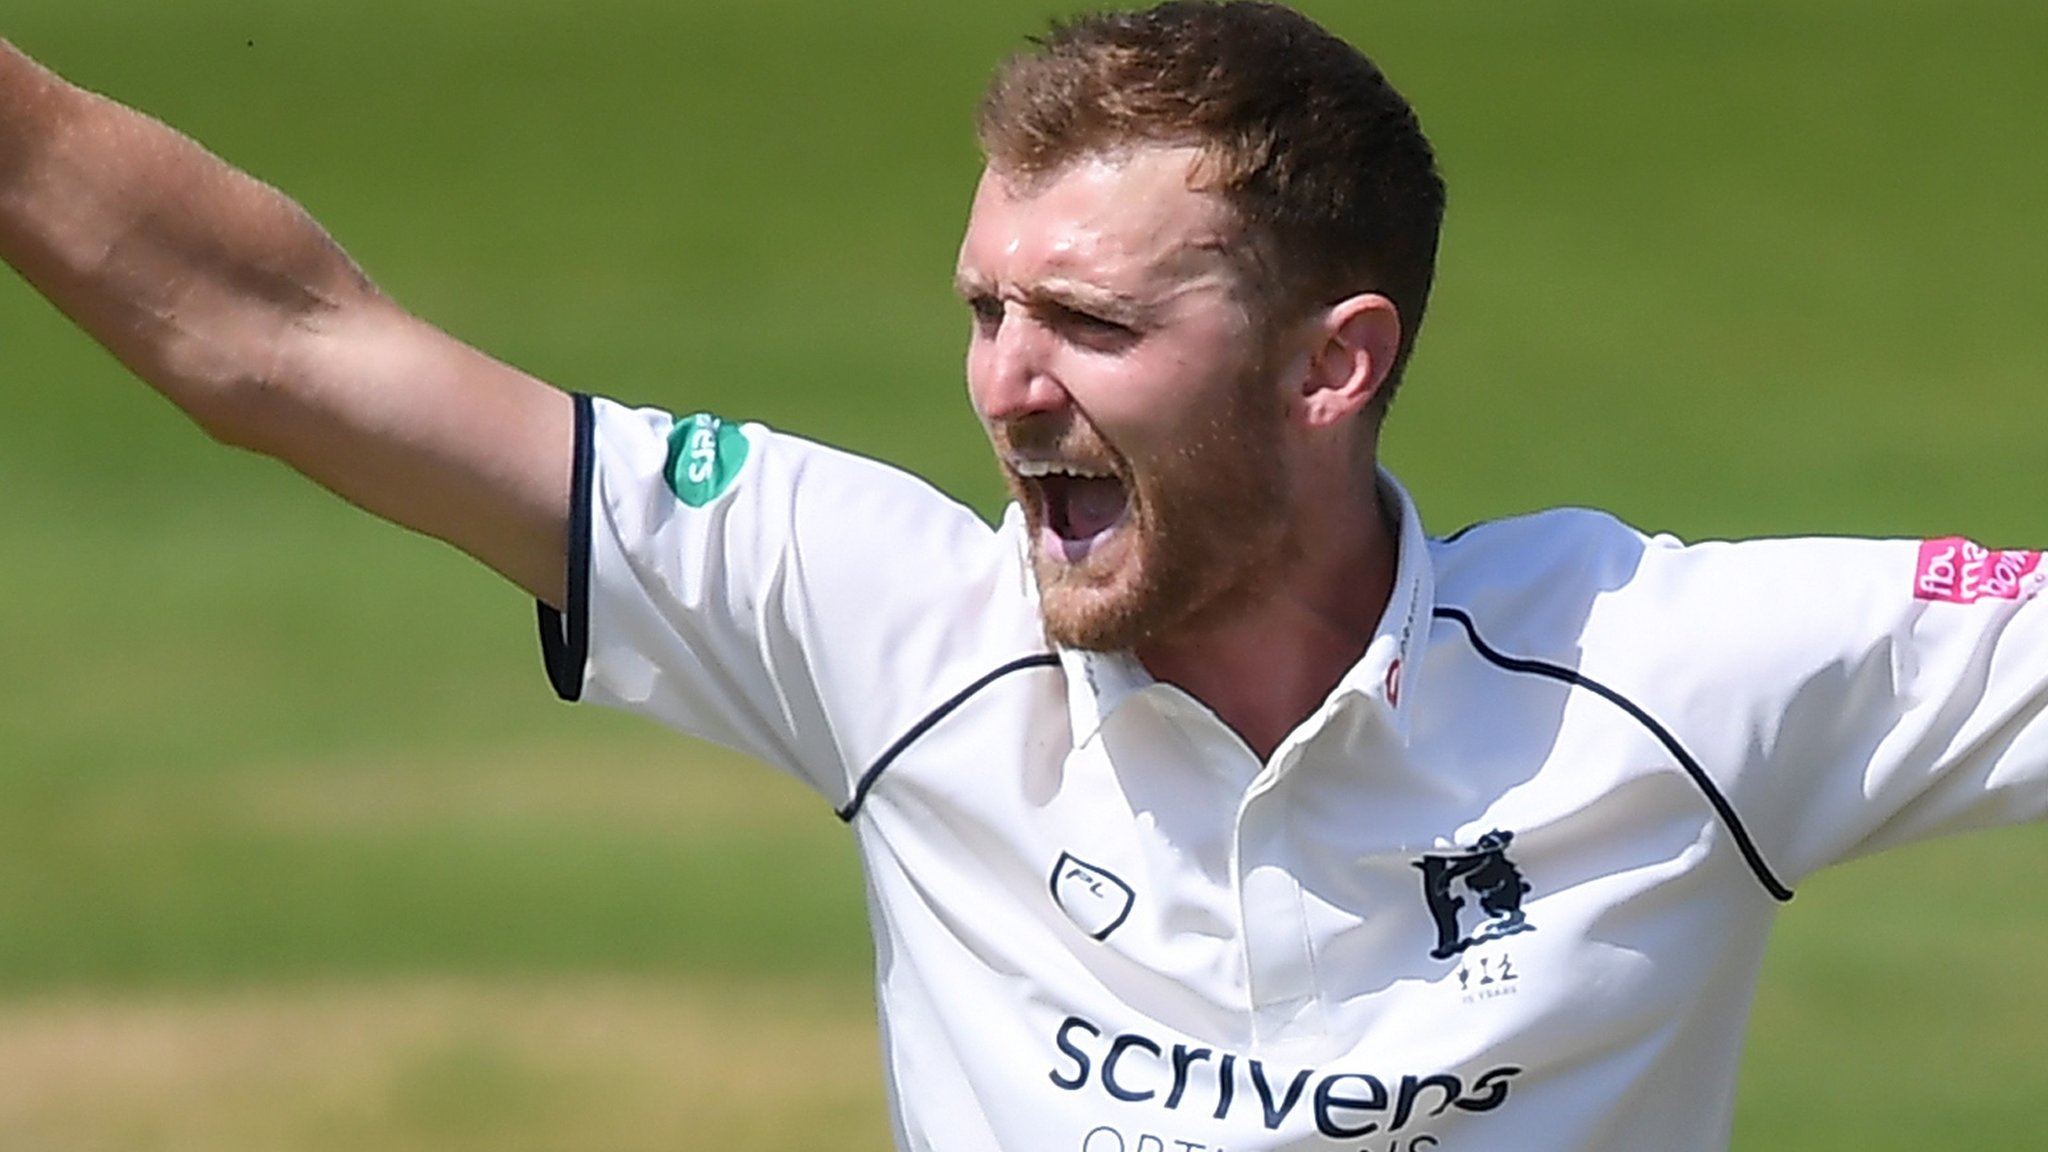 Olly Hannon-Dalby: Warwickshire bowler signs two-year contract extension